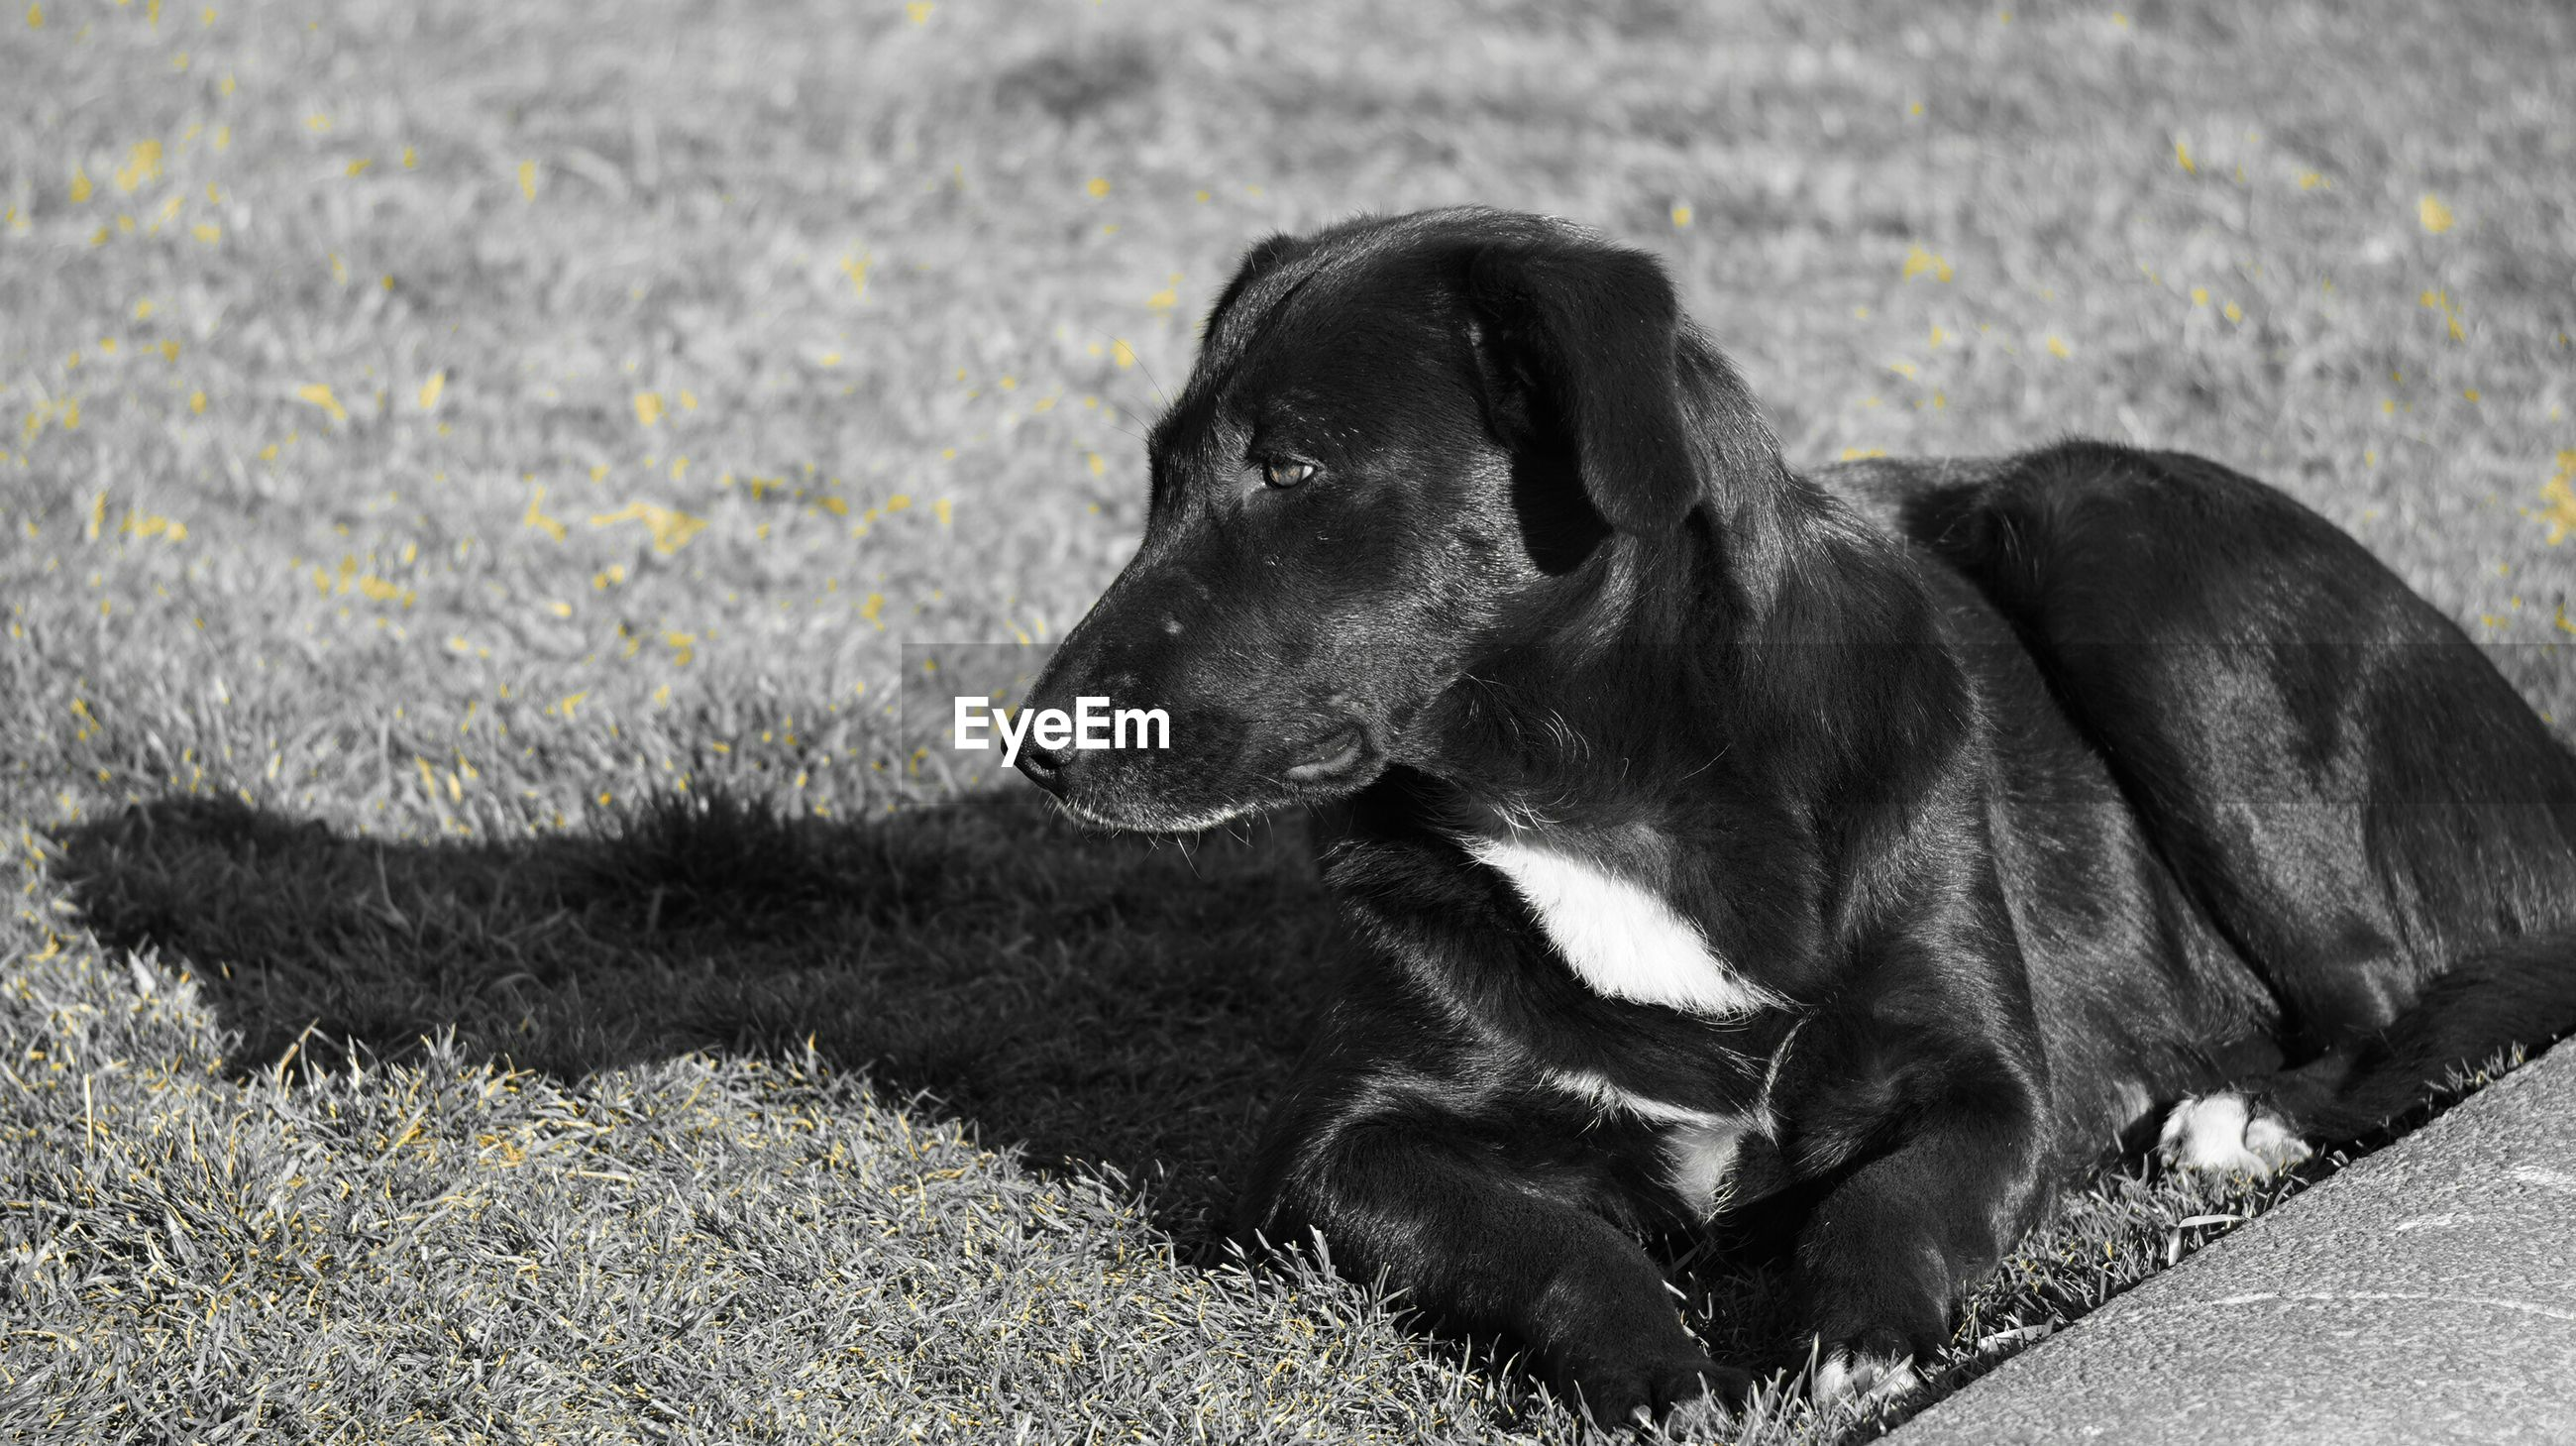 animal themes, mammal, one animal, domestic animals, pets, dog, relaxation, black color, lying down, resting, sleeping, field, high angle view, day, no people, outdoors, eyes closed, animal head, grass, close-up